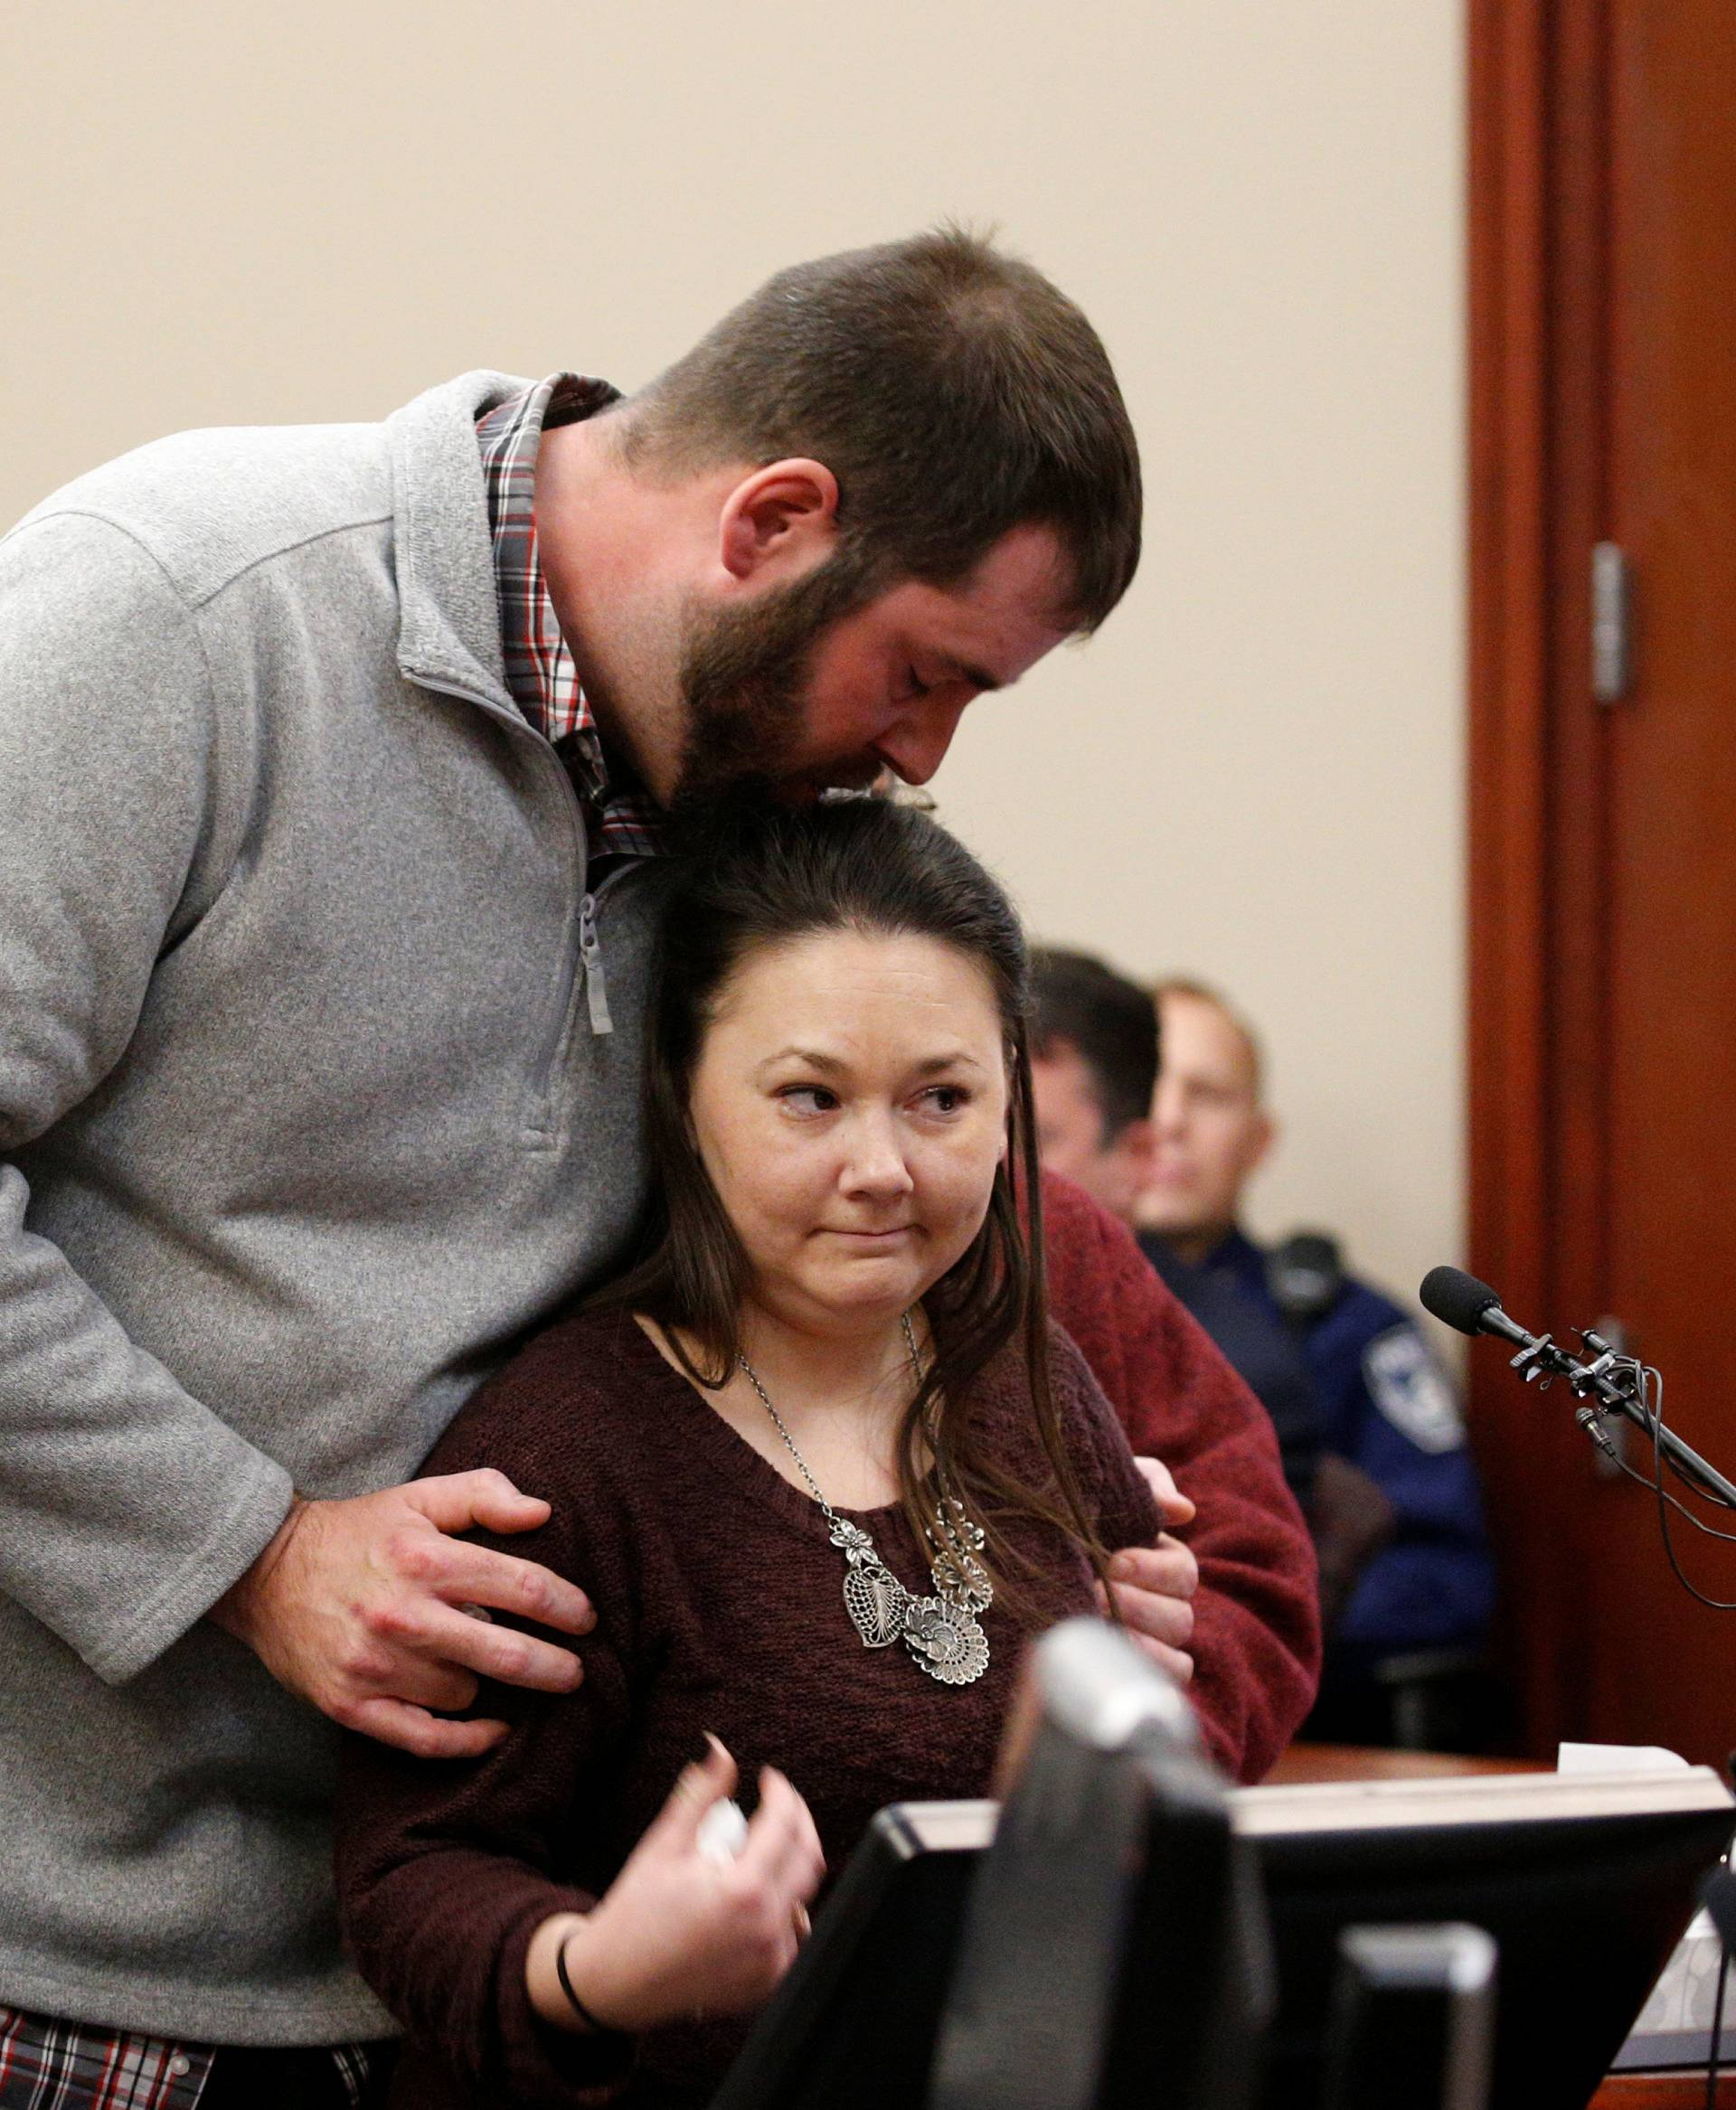 Victim Anya Gillengerten is comforted by her boyfriend as she speaks at the sentencing hearing for Larry Nassar, a former team USA Gymnastics doctor who pleaded guilty in November 2017 to sexual assault charges, in Lansing, Michigan